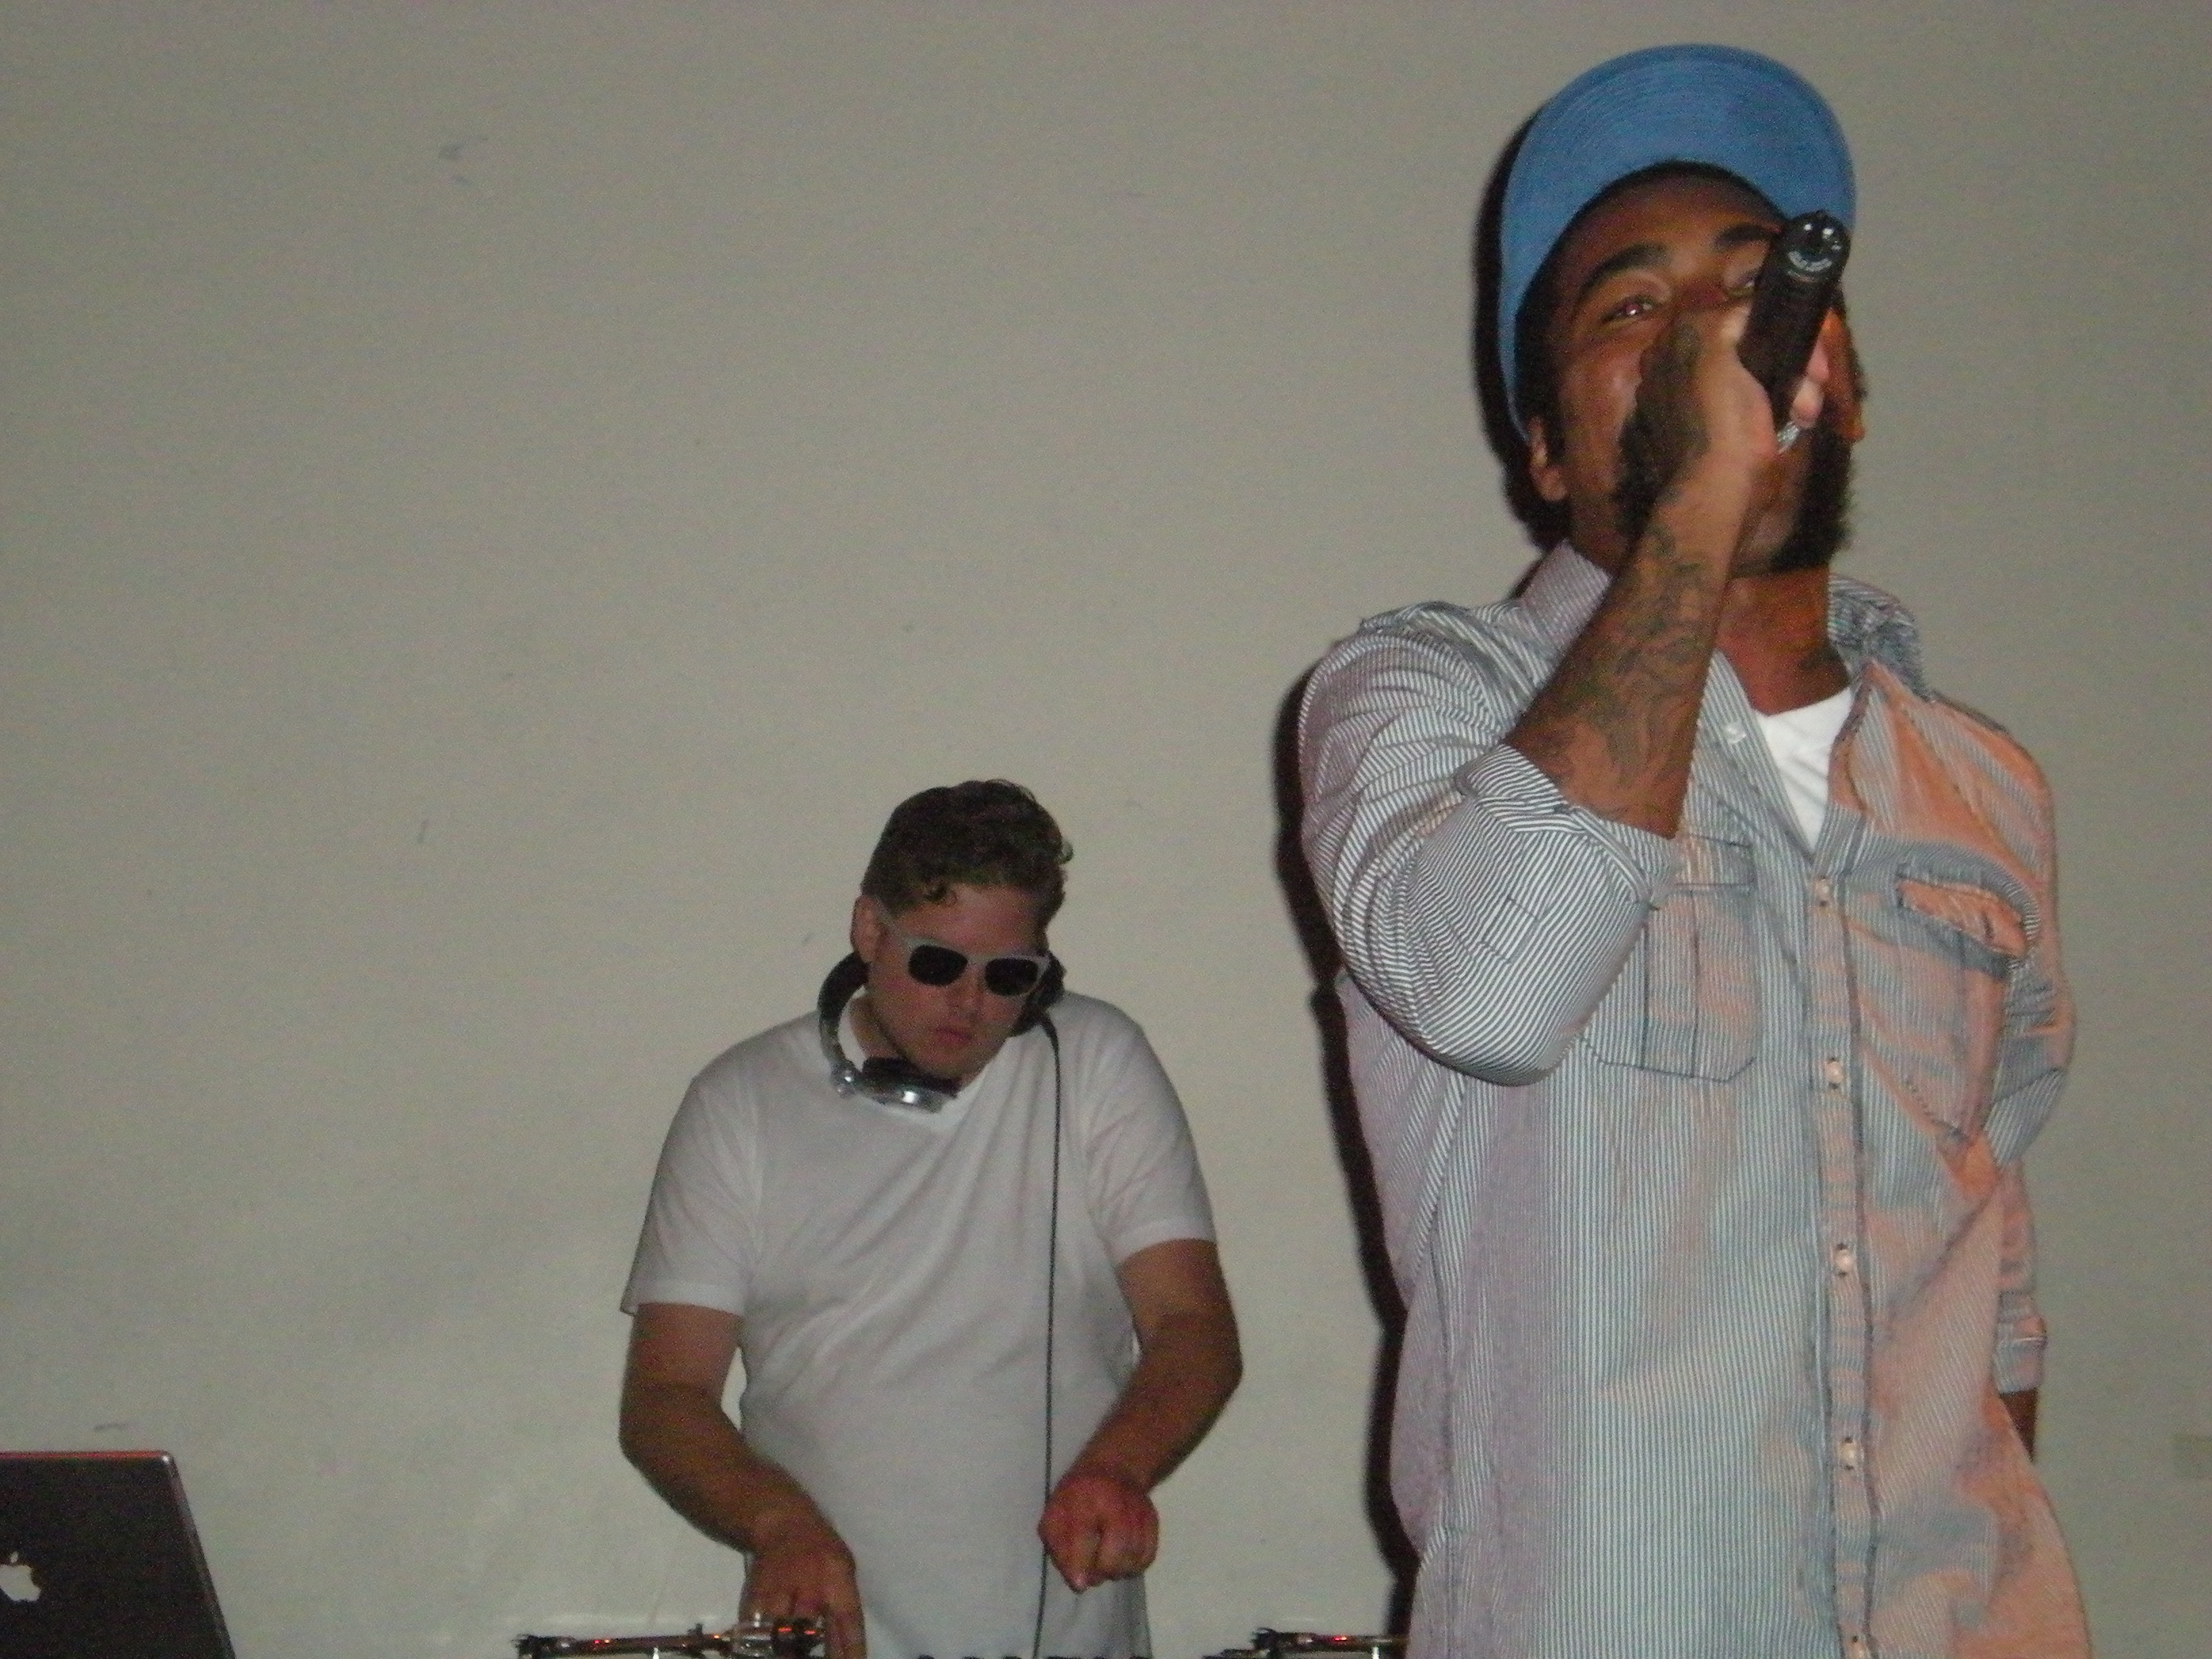 F. Stokes and Paper Tiger, photo courtesy of me